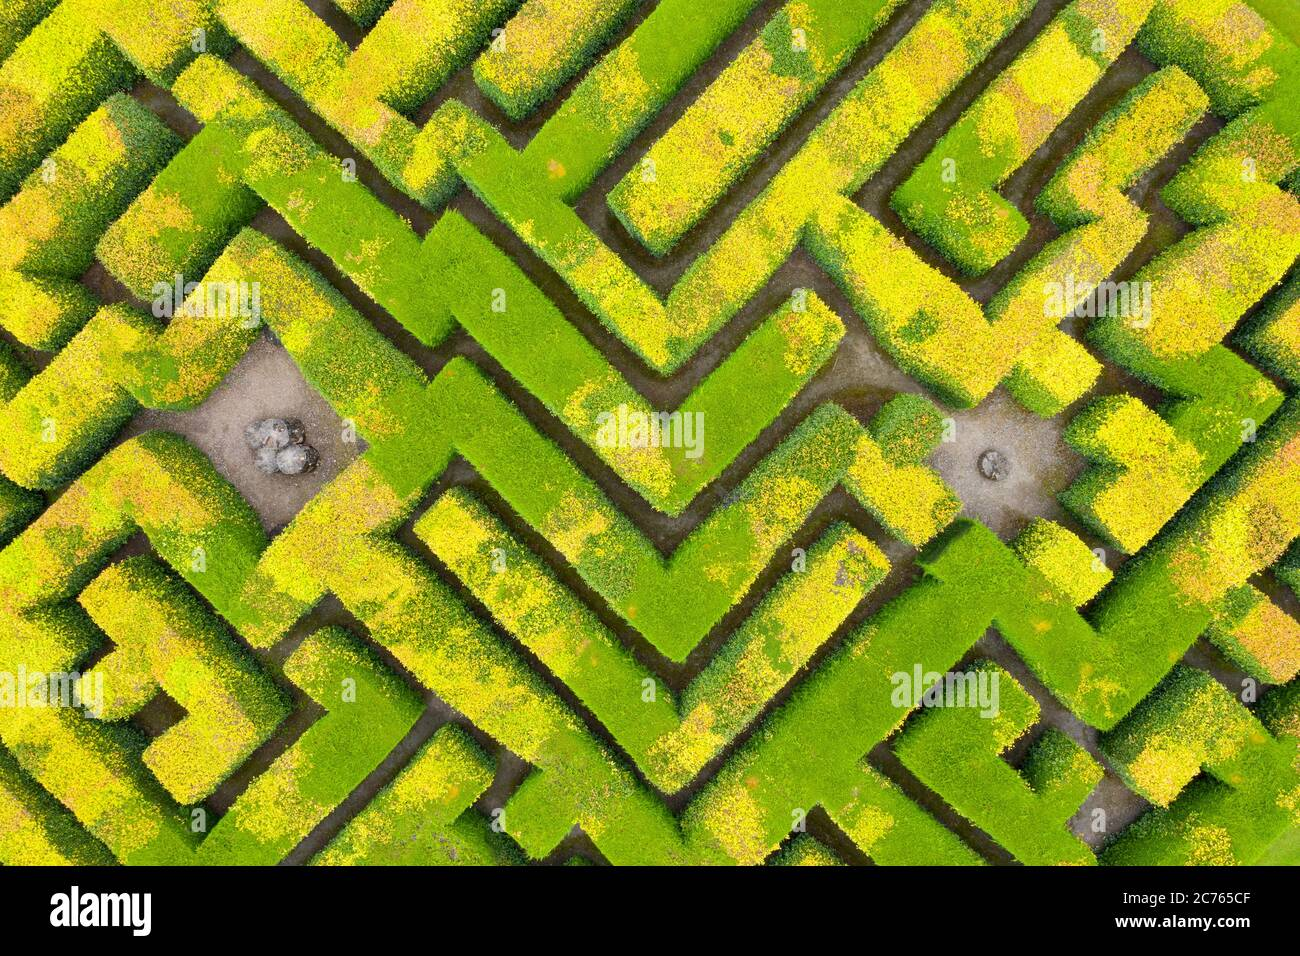 Innerleithen, Scotland, UK. 14 July, 2020, Aerial view of maze at Traquair House in the Scottish Borders, the oldest inhabited house in Scotland. The house is preparing to reopen to the public on Friday. Access to the maze will be limited to one household at a time. Iain Masterton/Alamy Live News Stock Photo